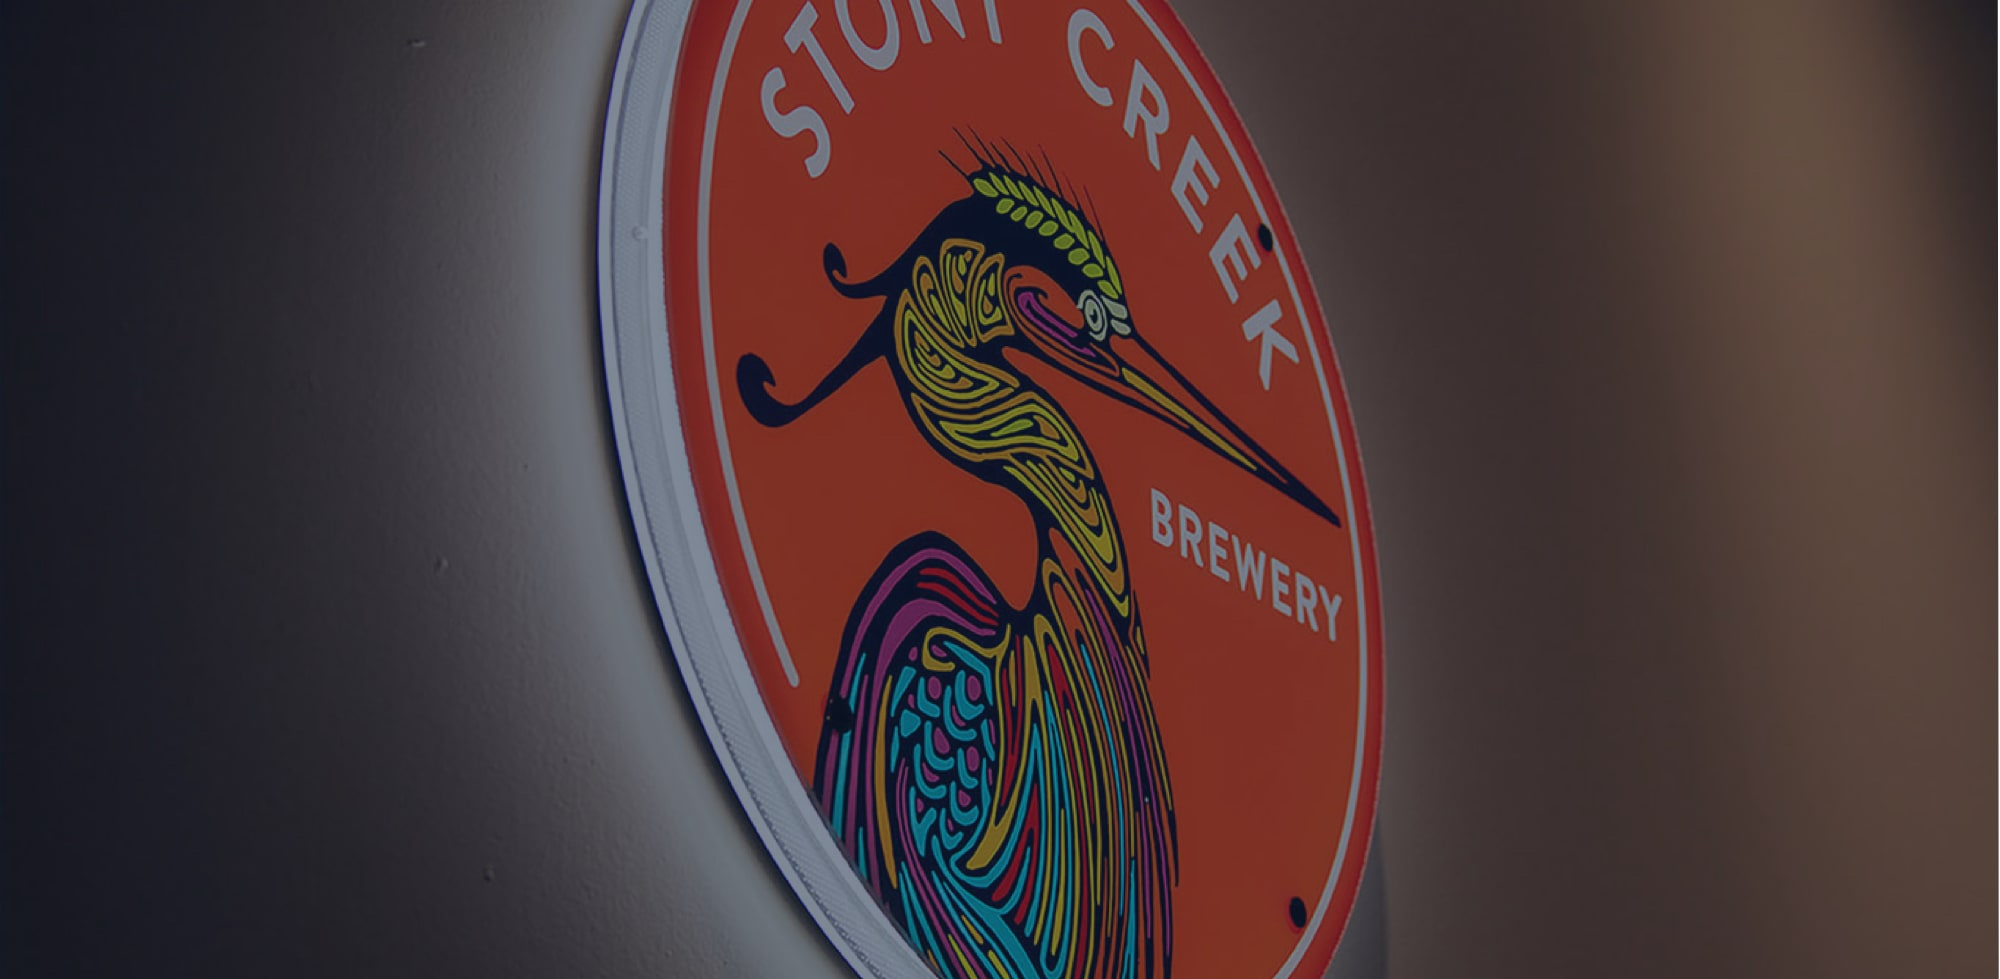 Stony Creek Brewery Logo